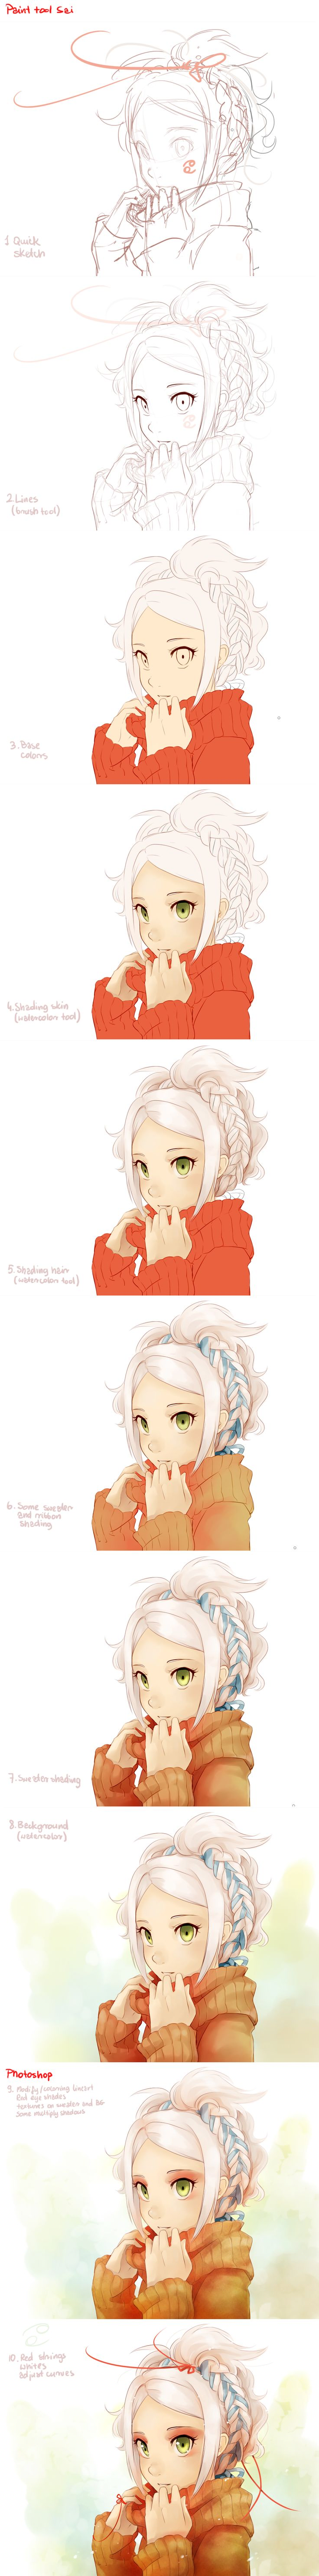 best images about 채색튜토리얼 on Pinterest How to draw